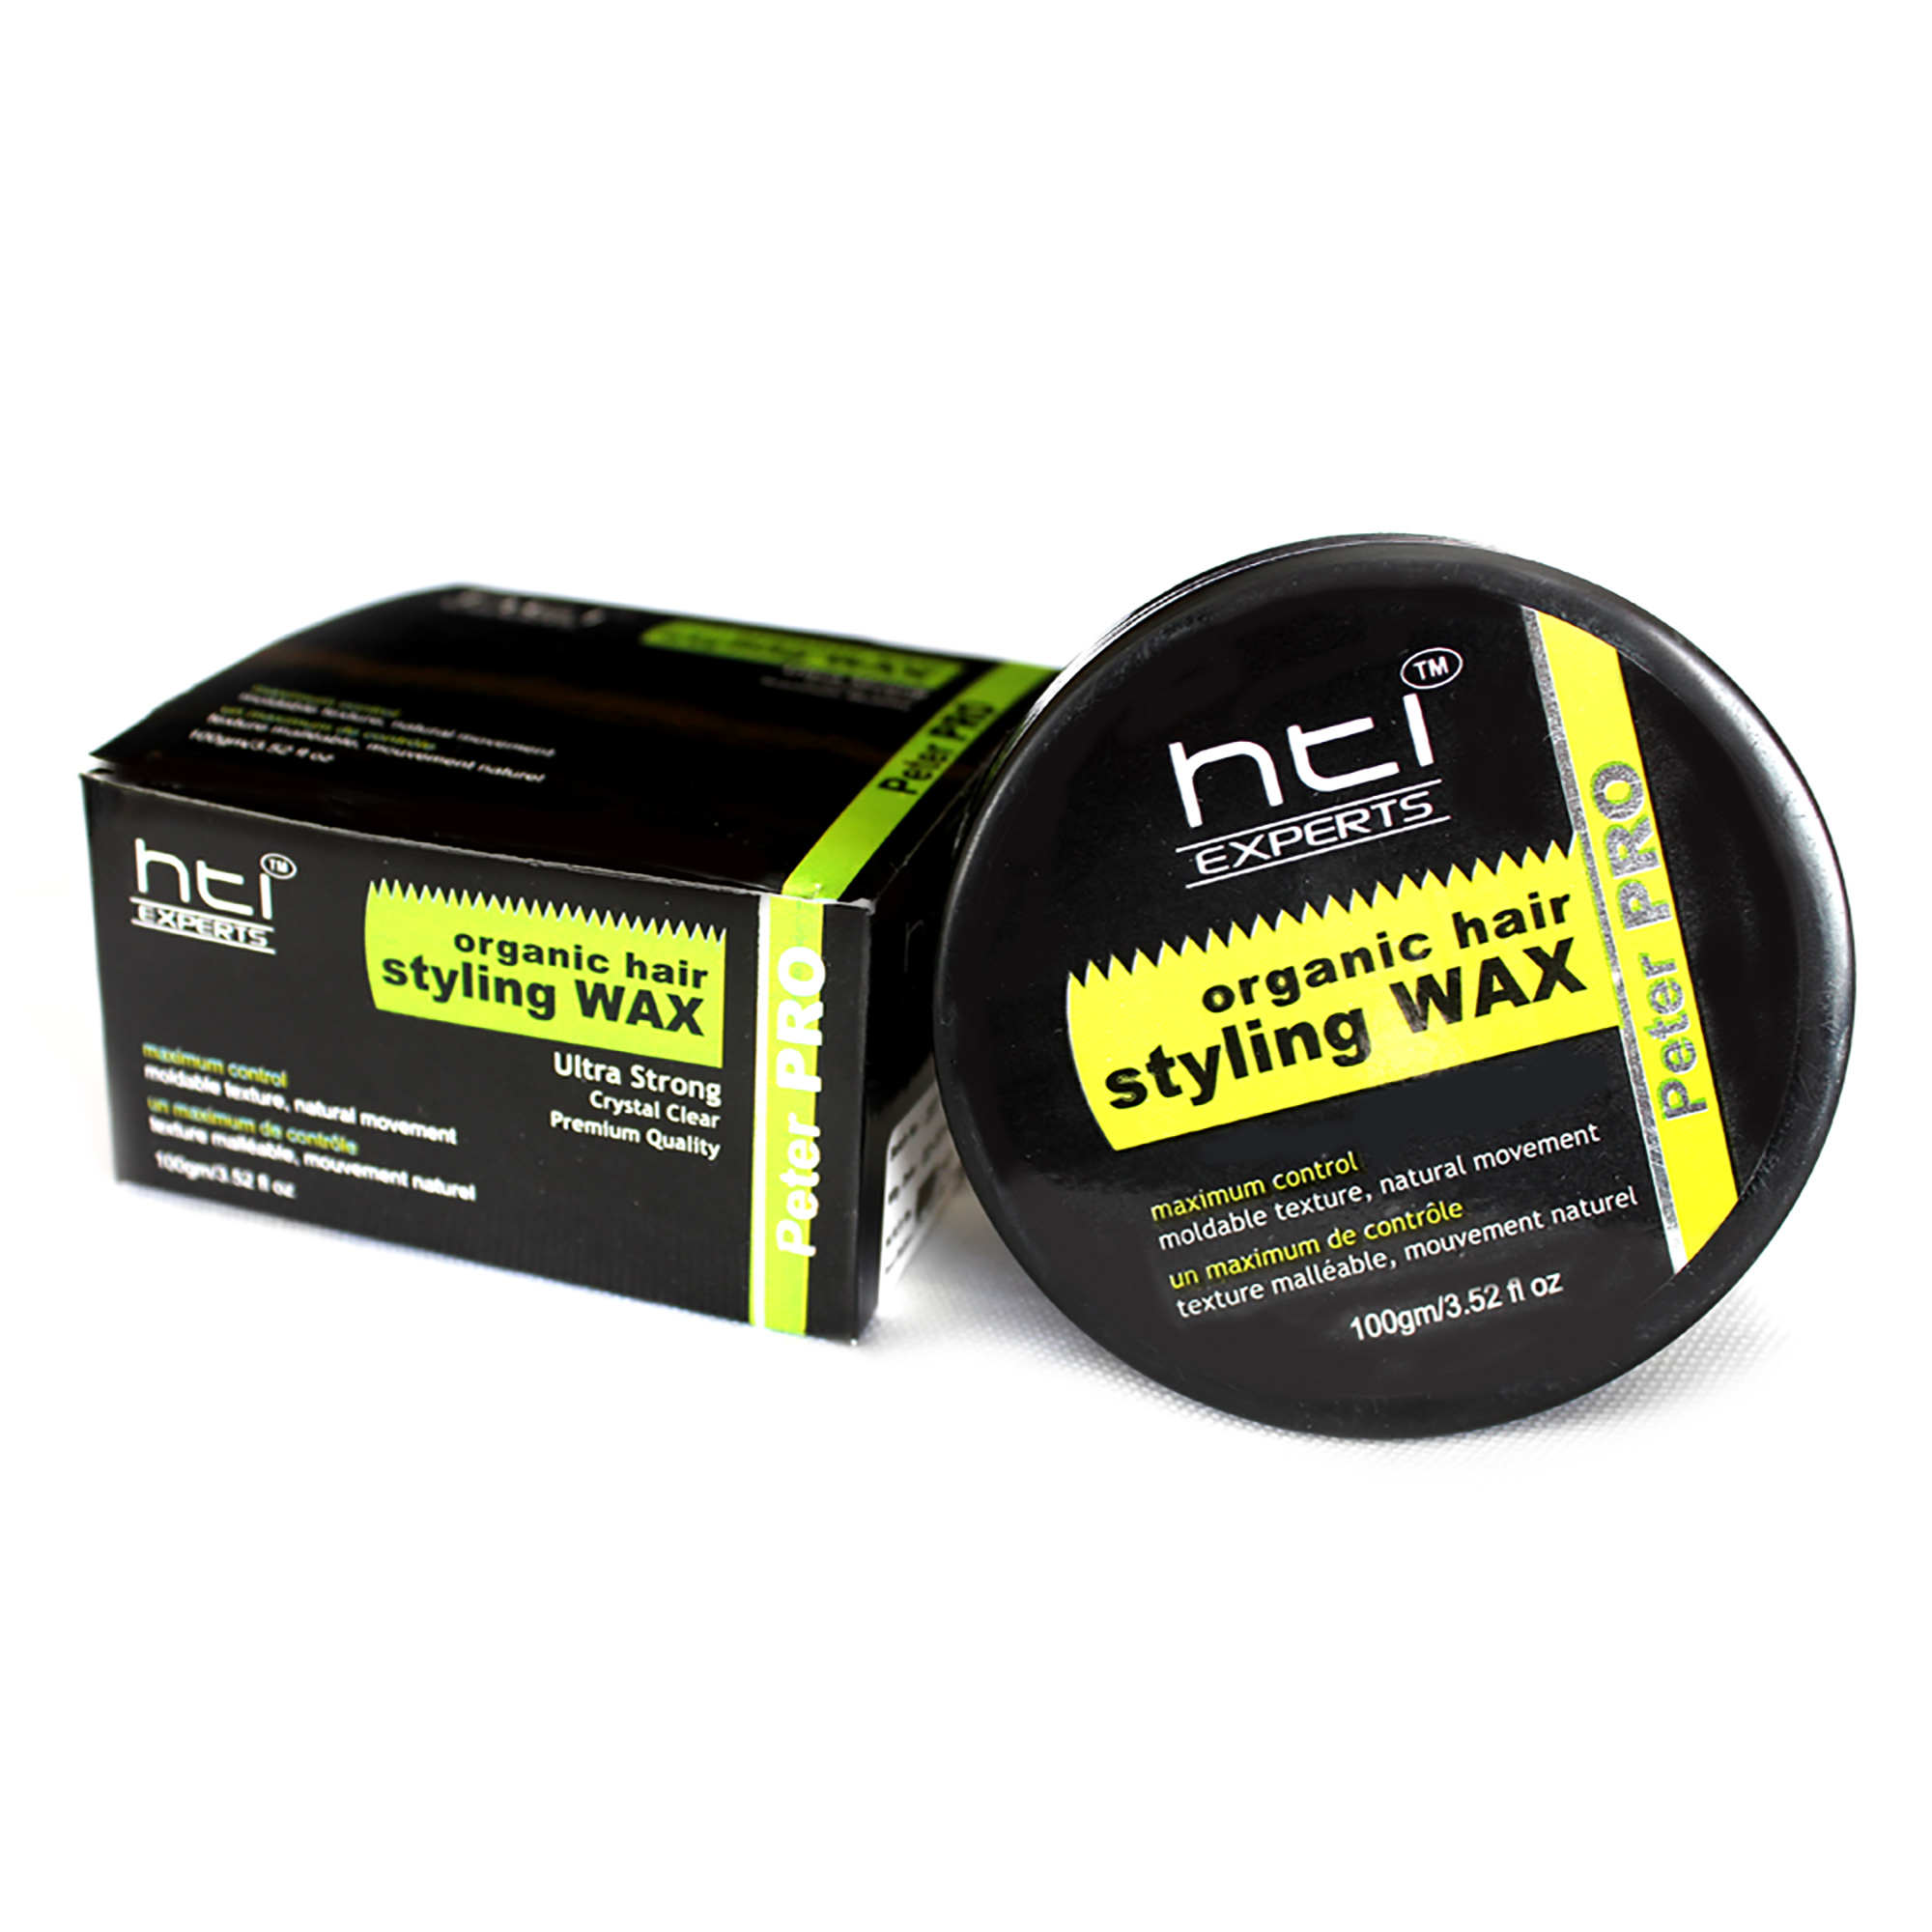 natural hair styling wax organic hair styling wax ultra strong hti experts 8263 | g3